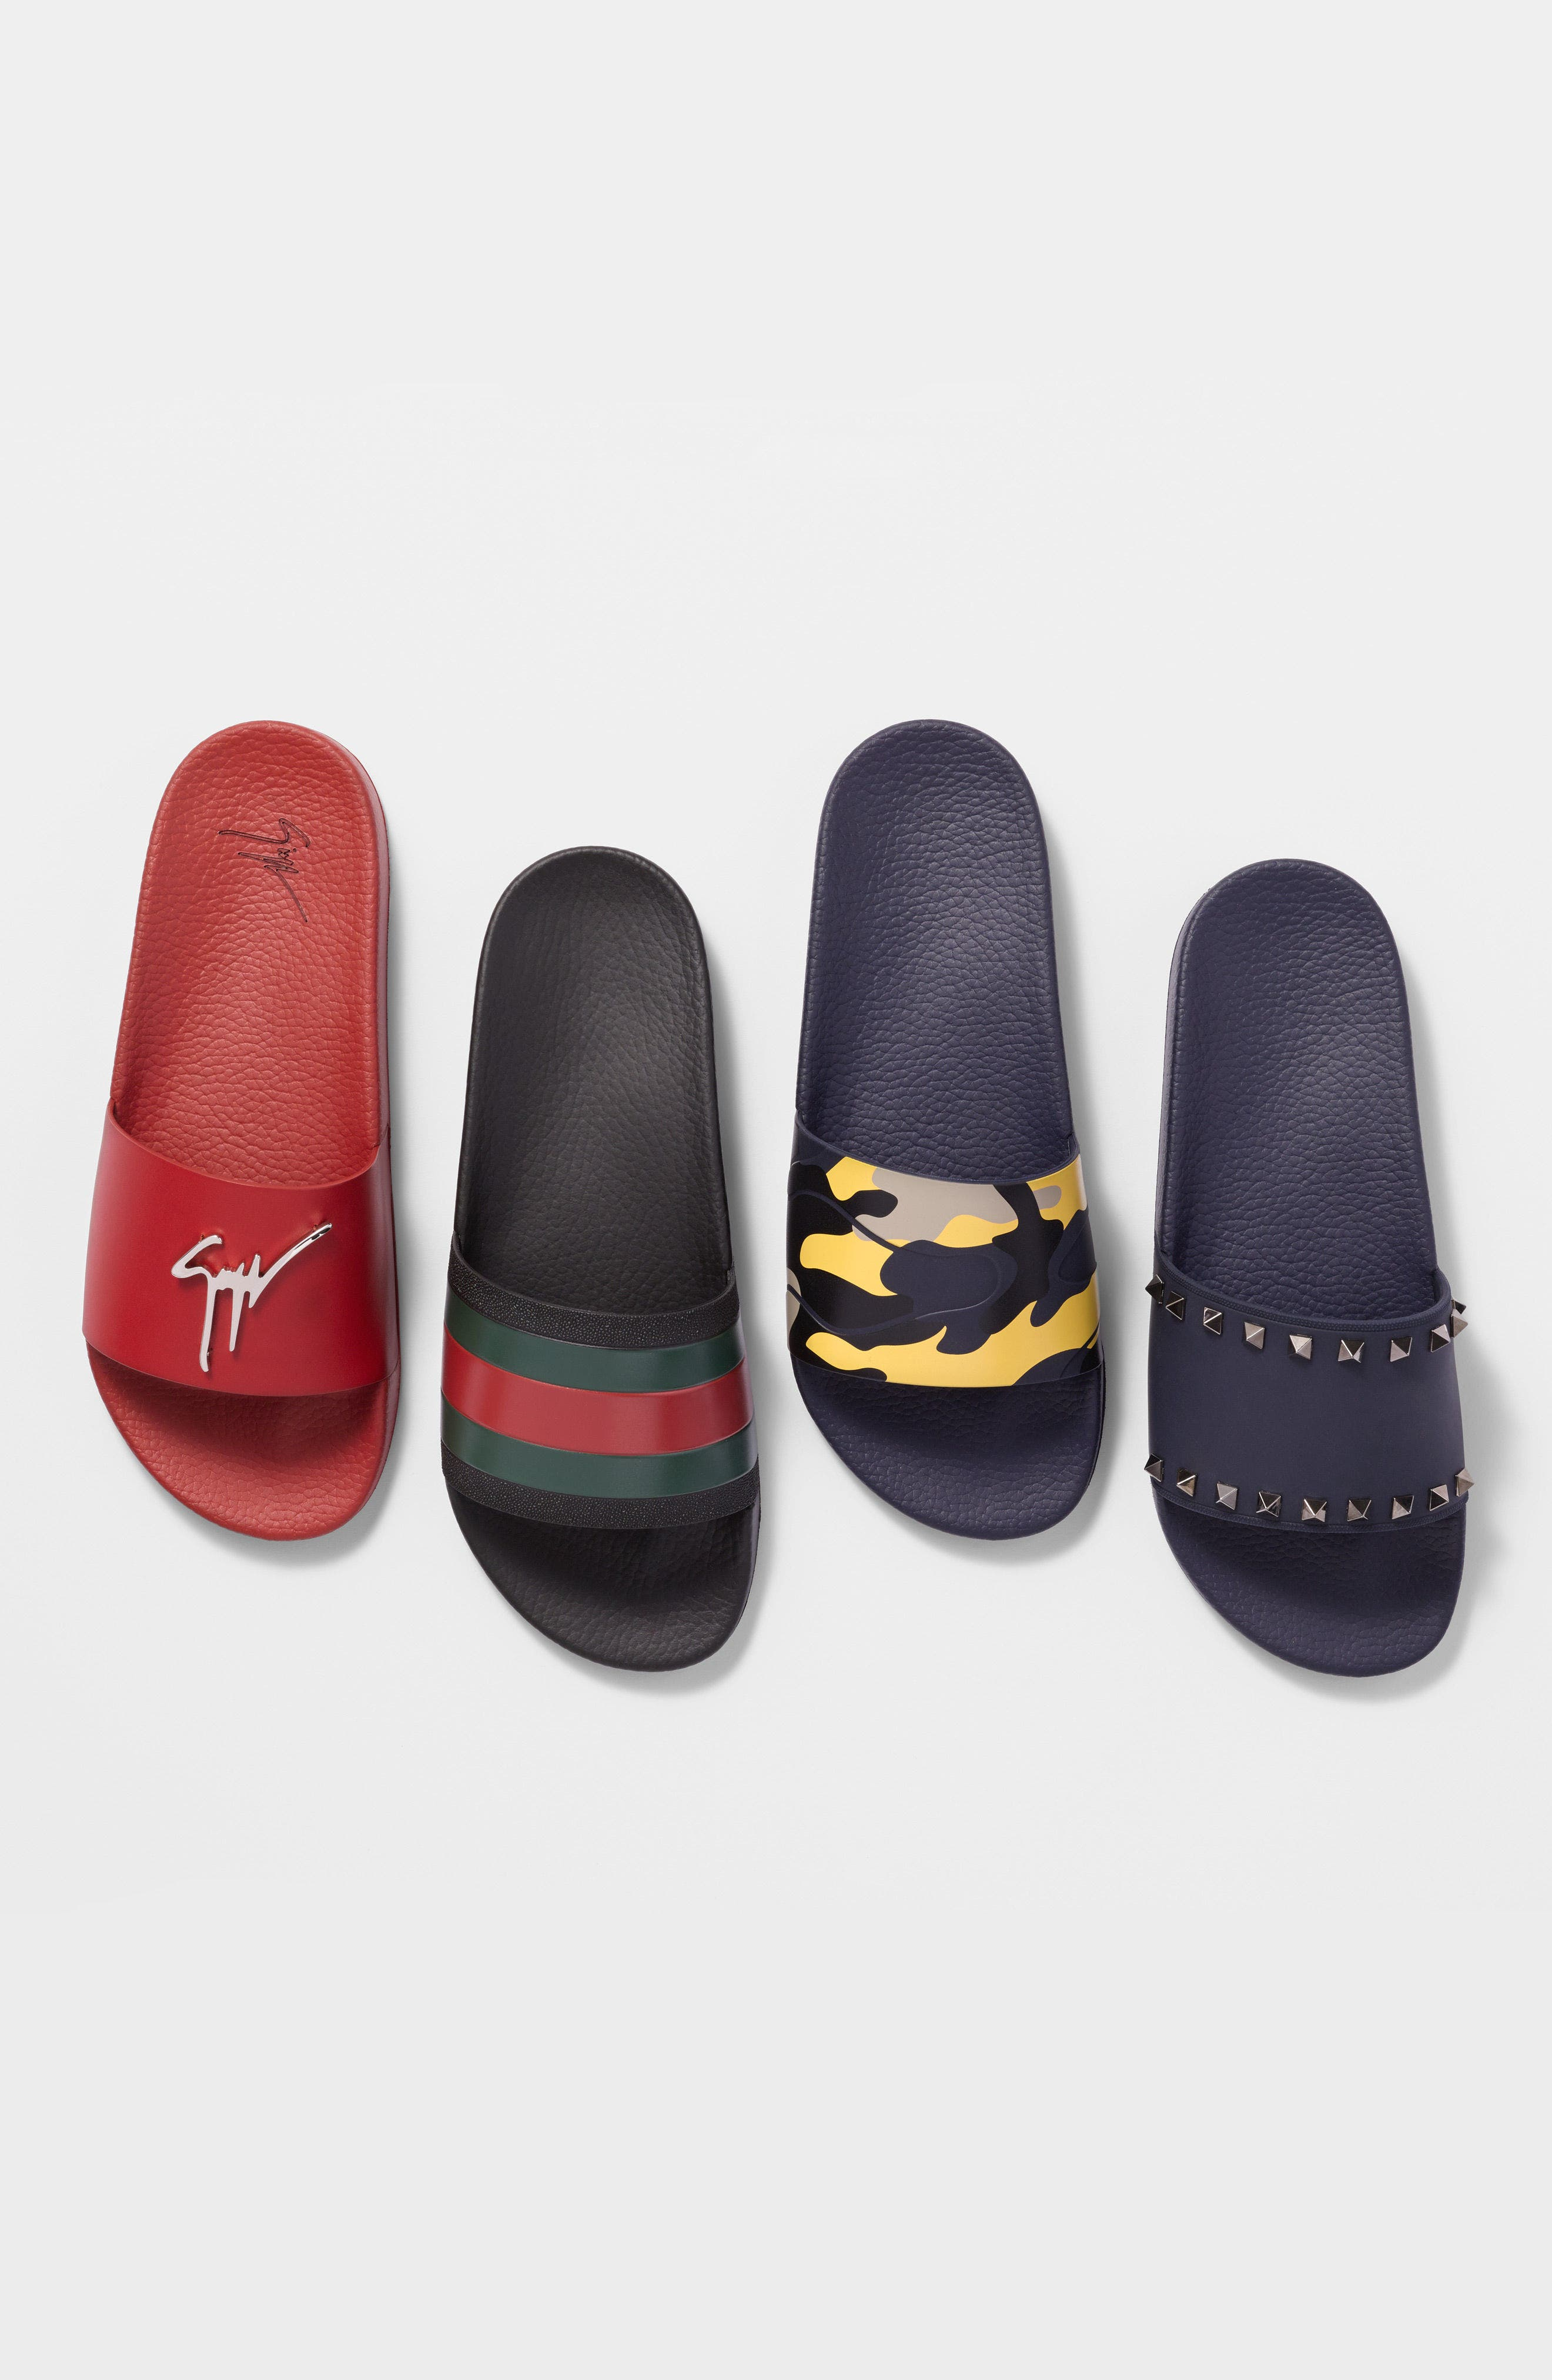 Slide Sandal,                         Main,                         color, 335